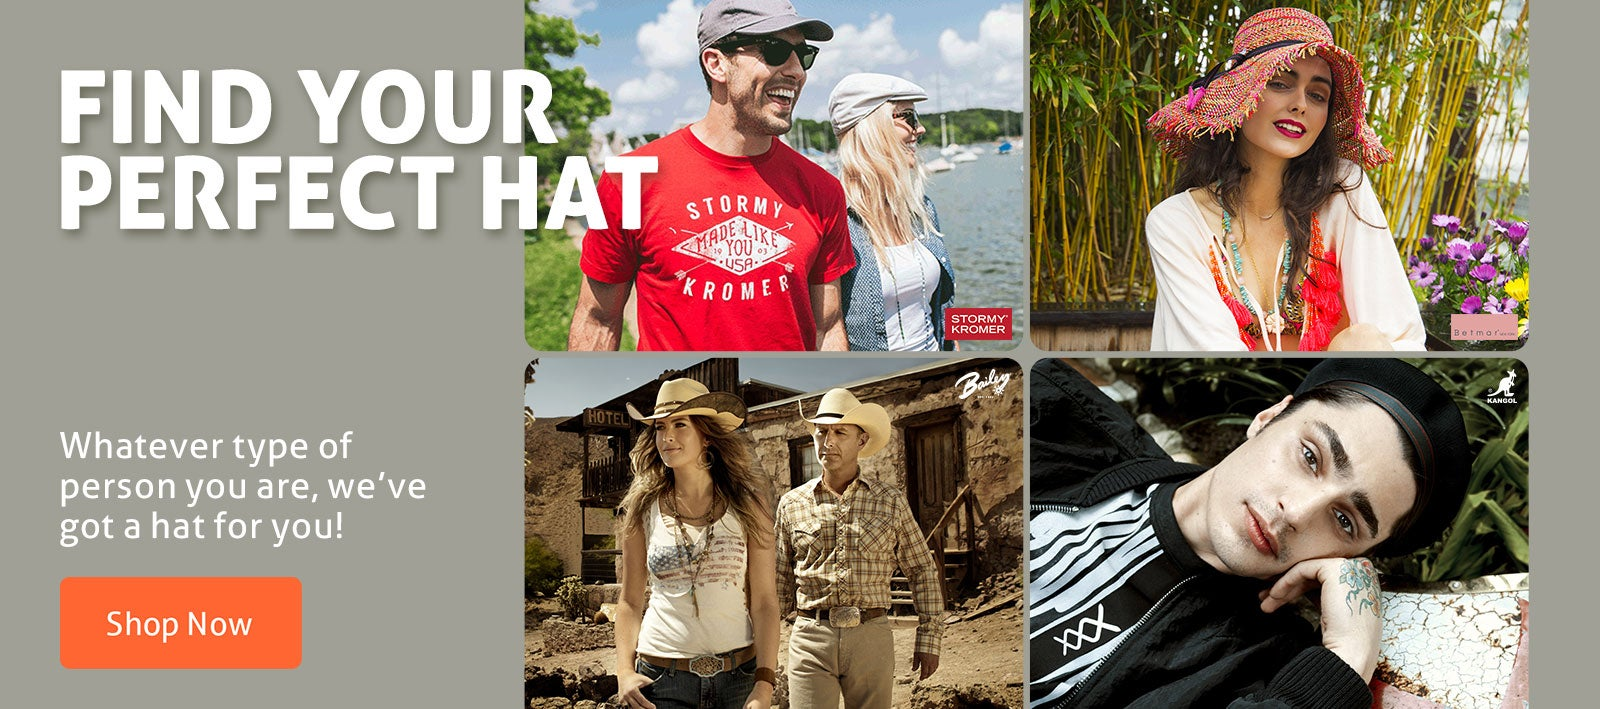 Find your perfect hat!